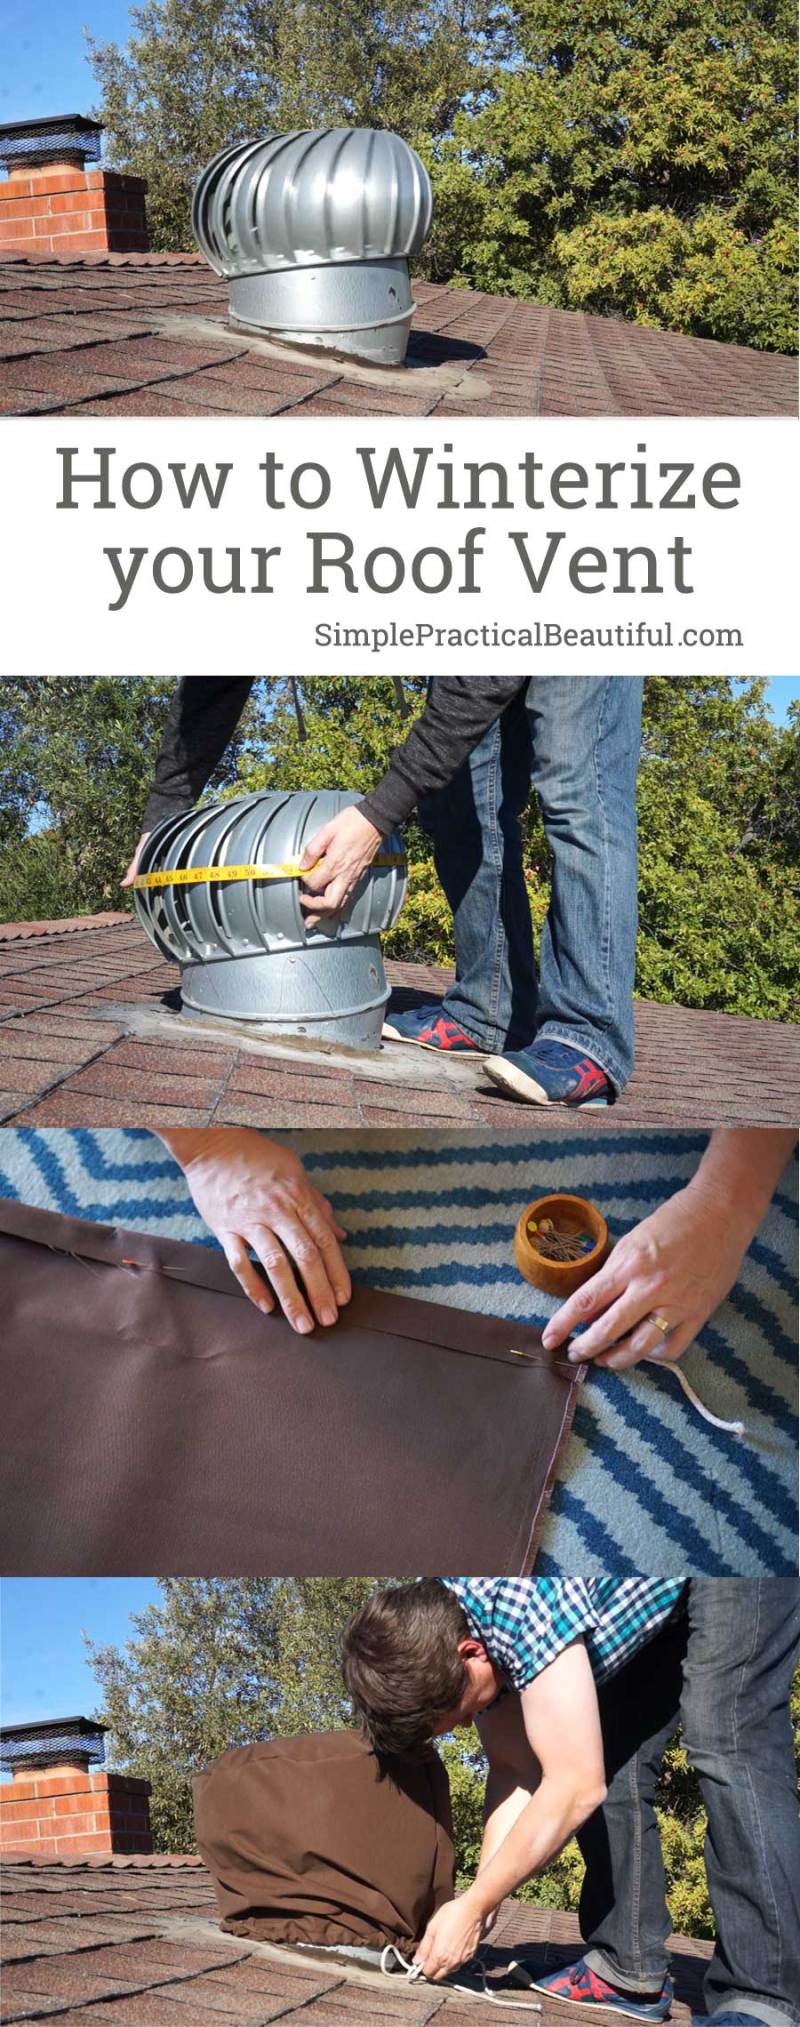 Winterize your roof by making a DIY roof vent cover for your whirlybird vent   How to make a roof vent cover video tutorial